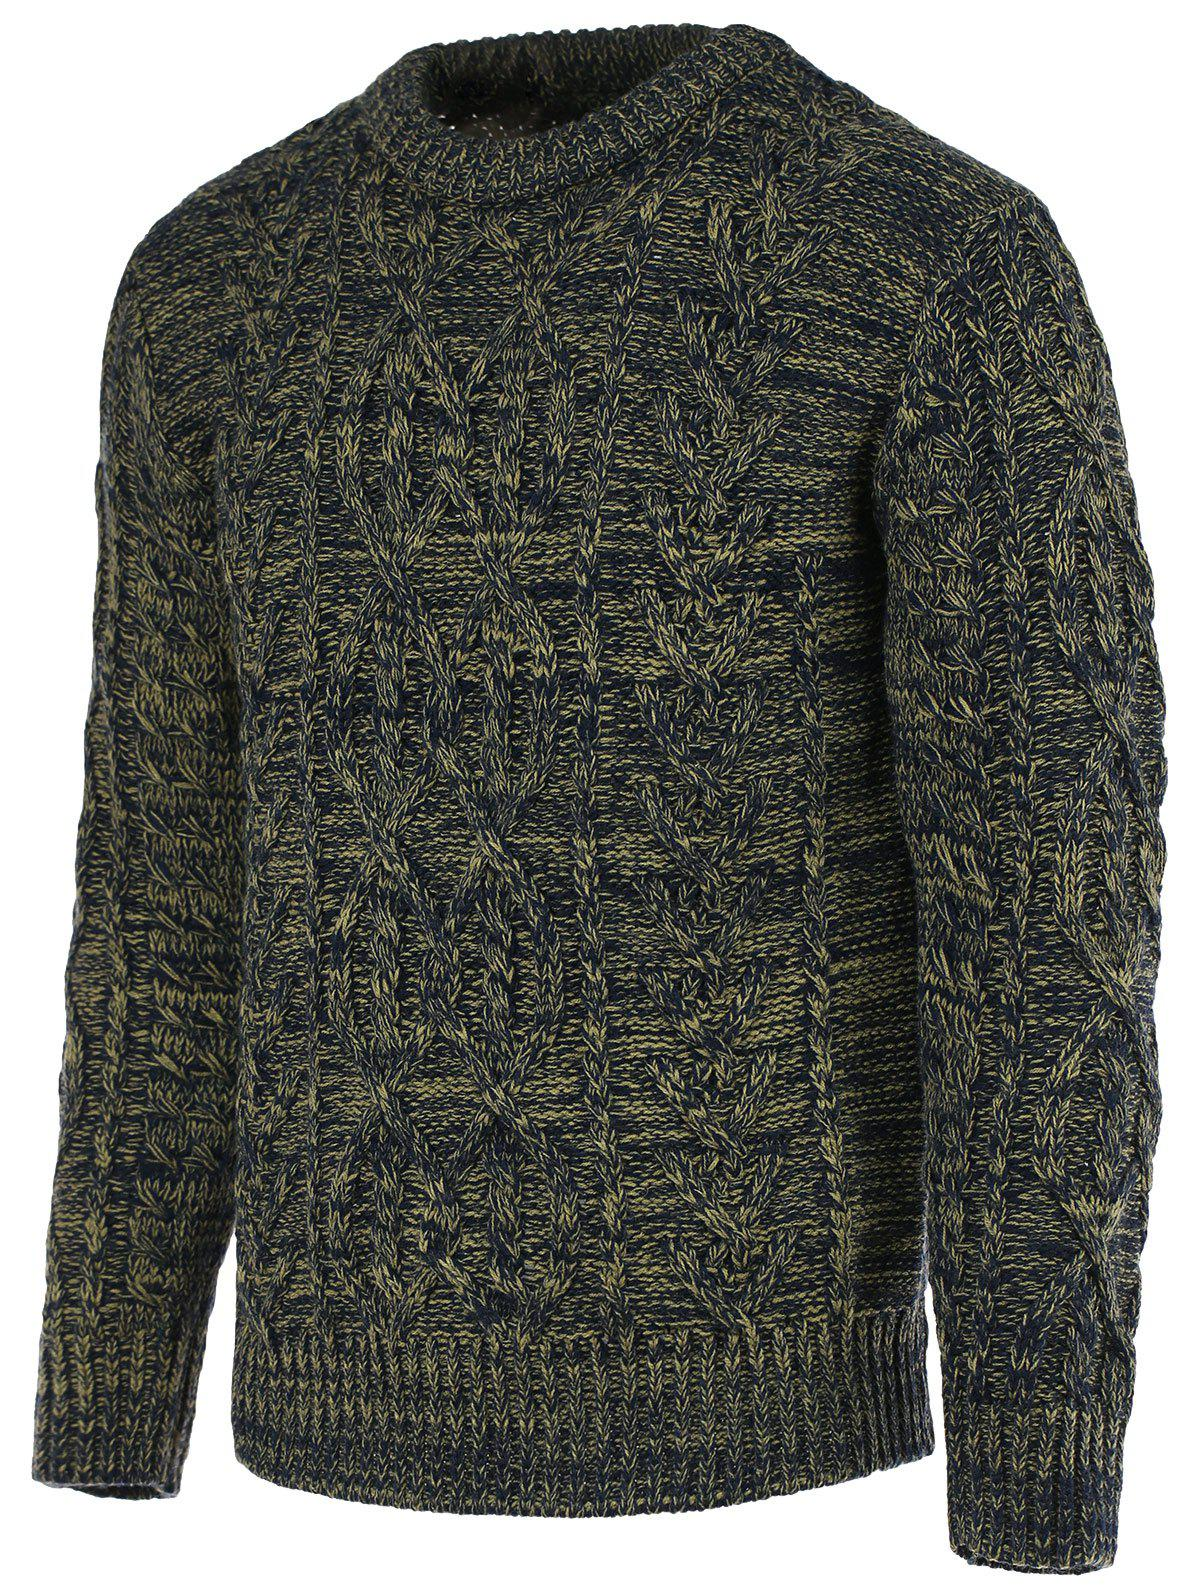 Braid Pattern Heathered Crew Neck Long Sleeve Men's Sweater - COLORMIX XL